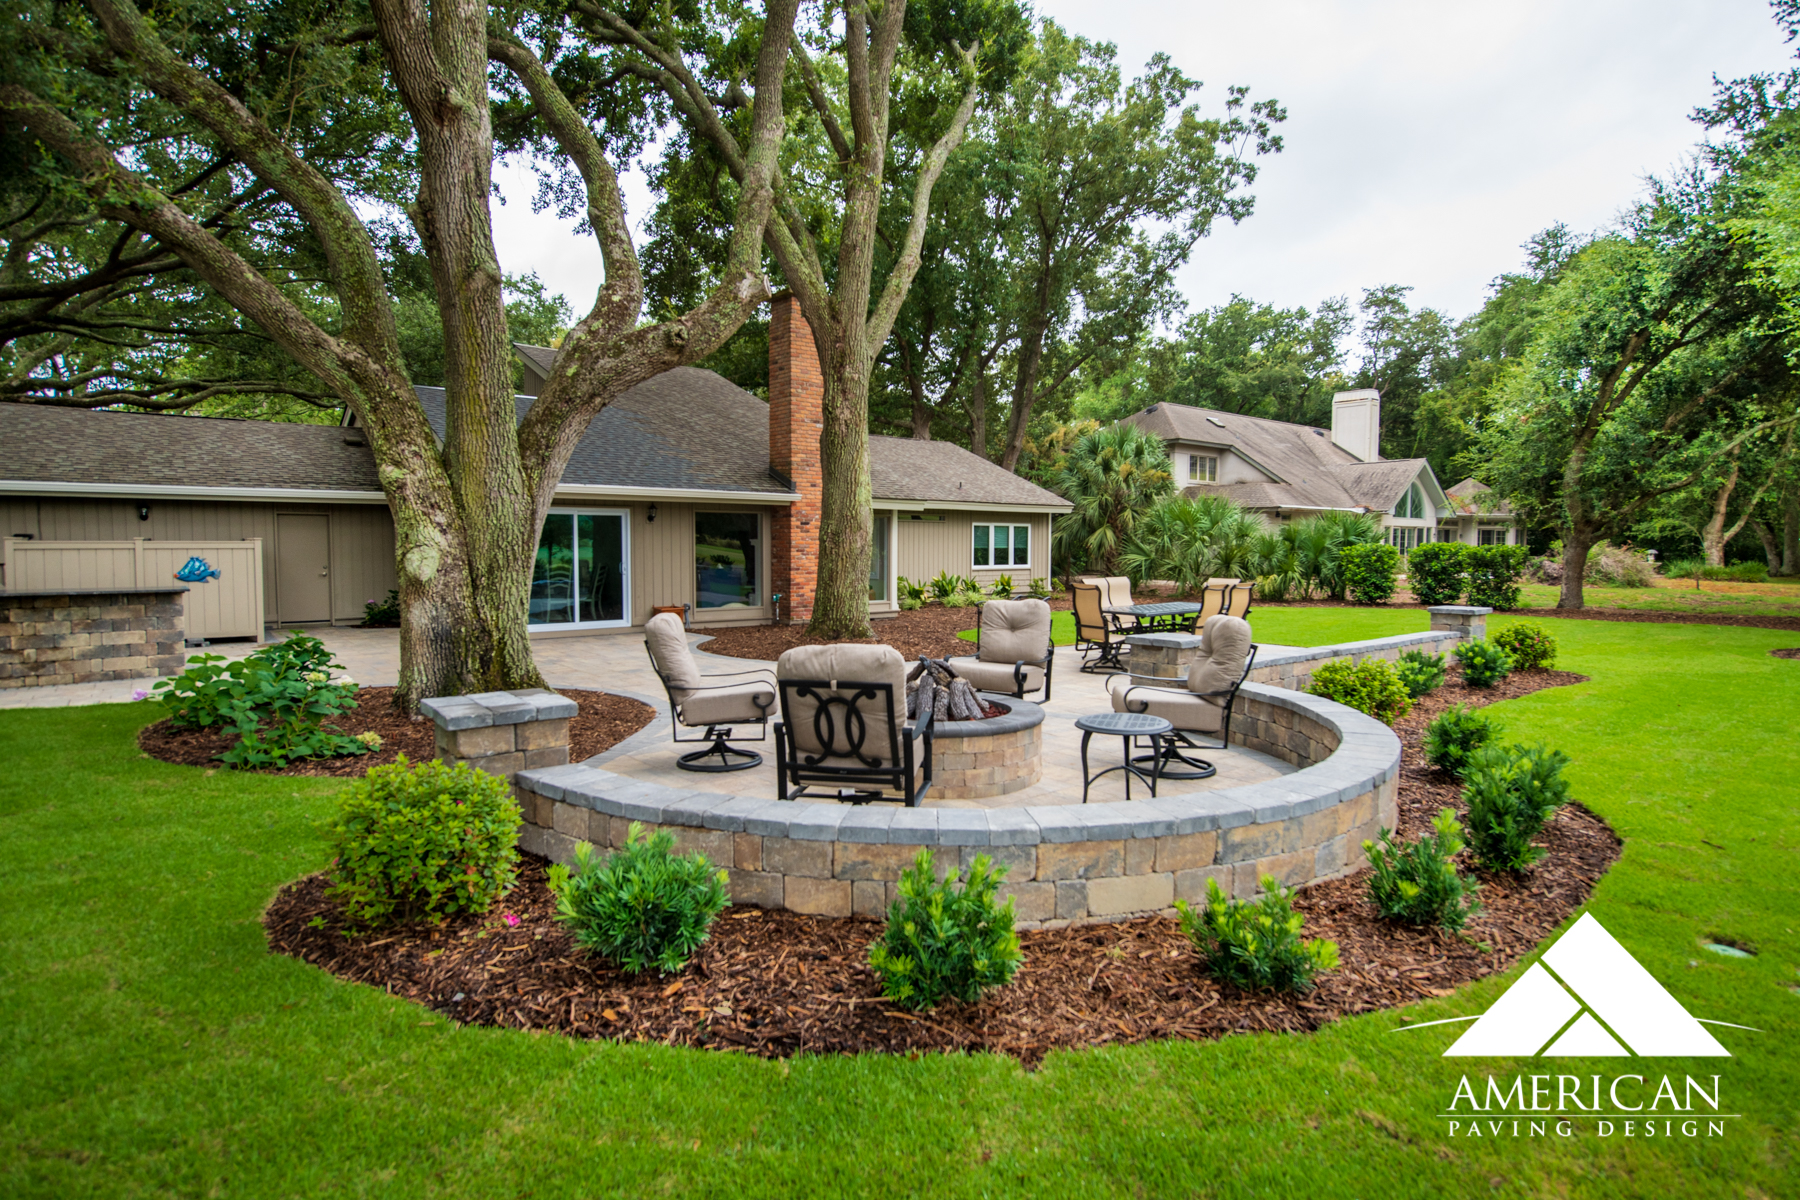 Much like the 3D design, this paver patio is PRESTINE perfection!